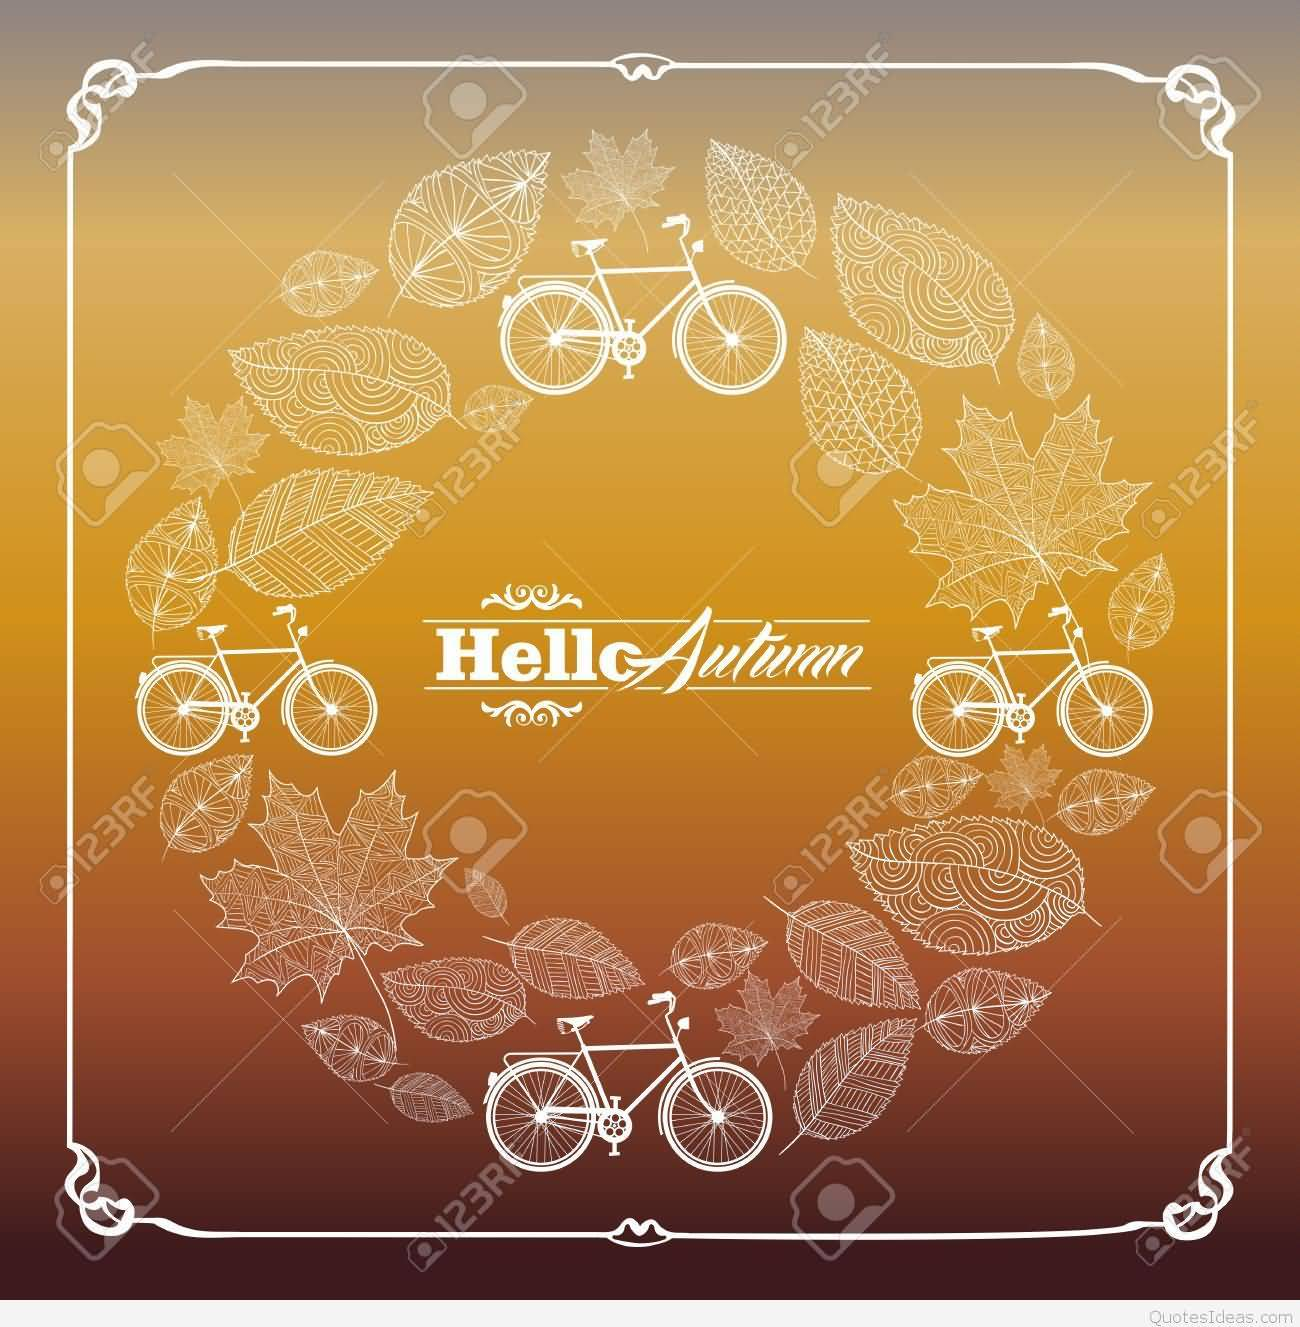 Charmant Hello Autumn Beautiful Greeting Card